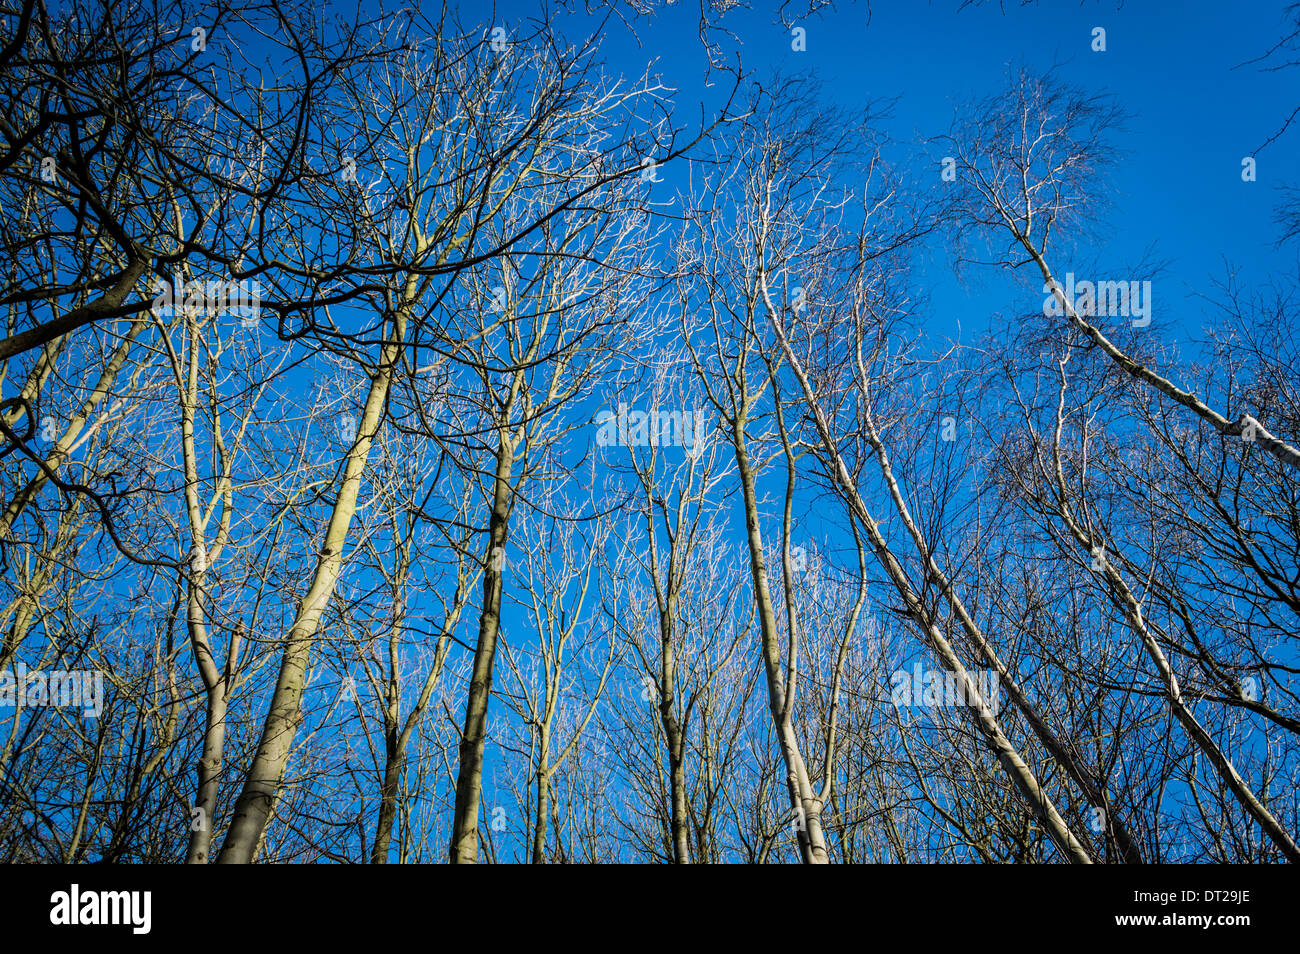 Silver Birch Trees against Blue sky - Stock Image